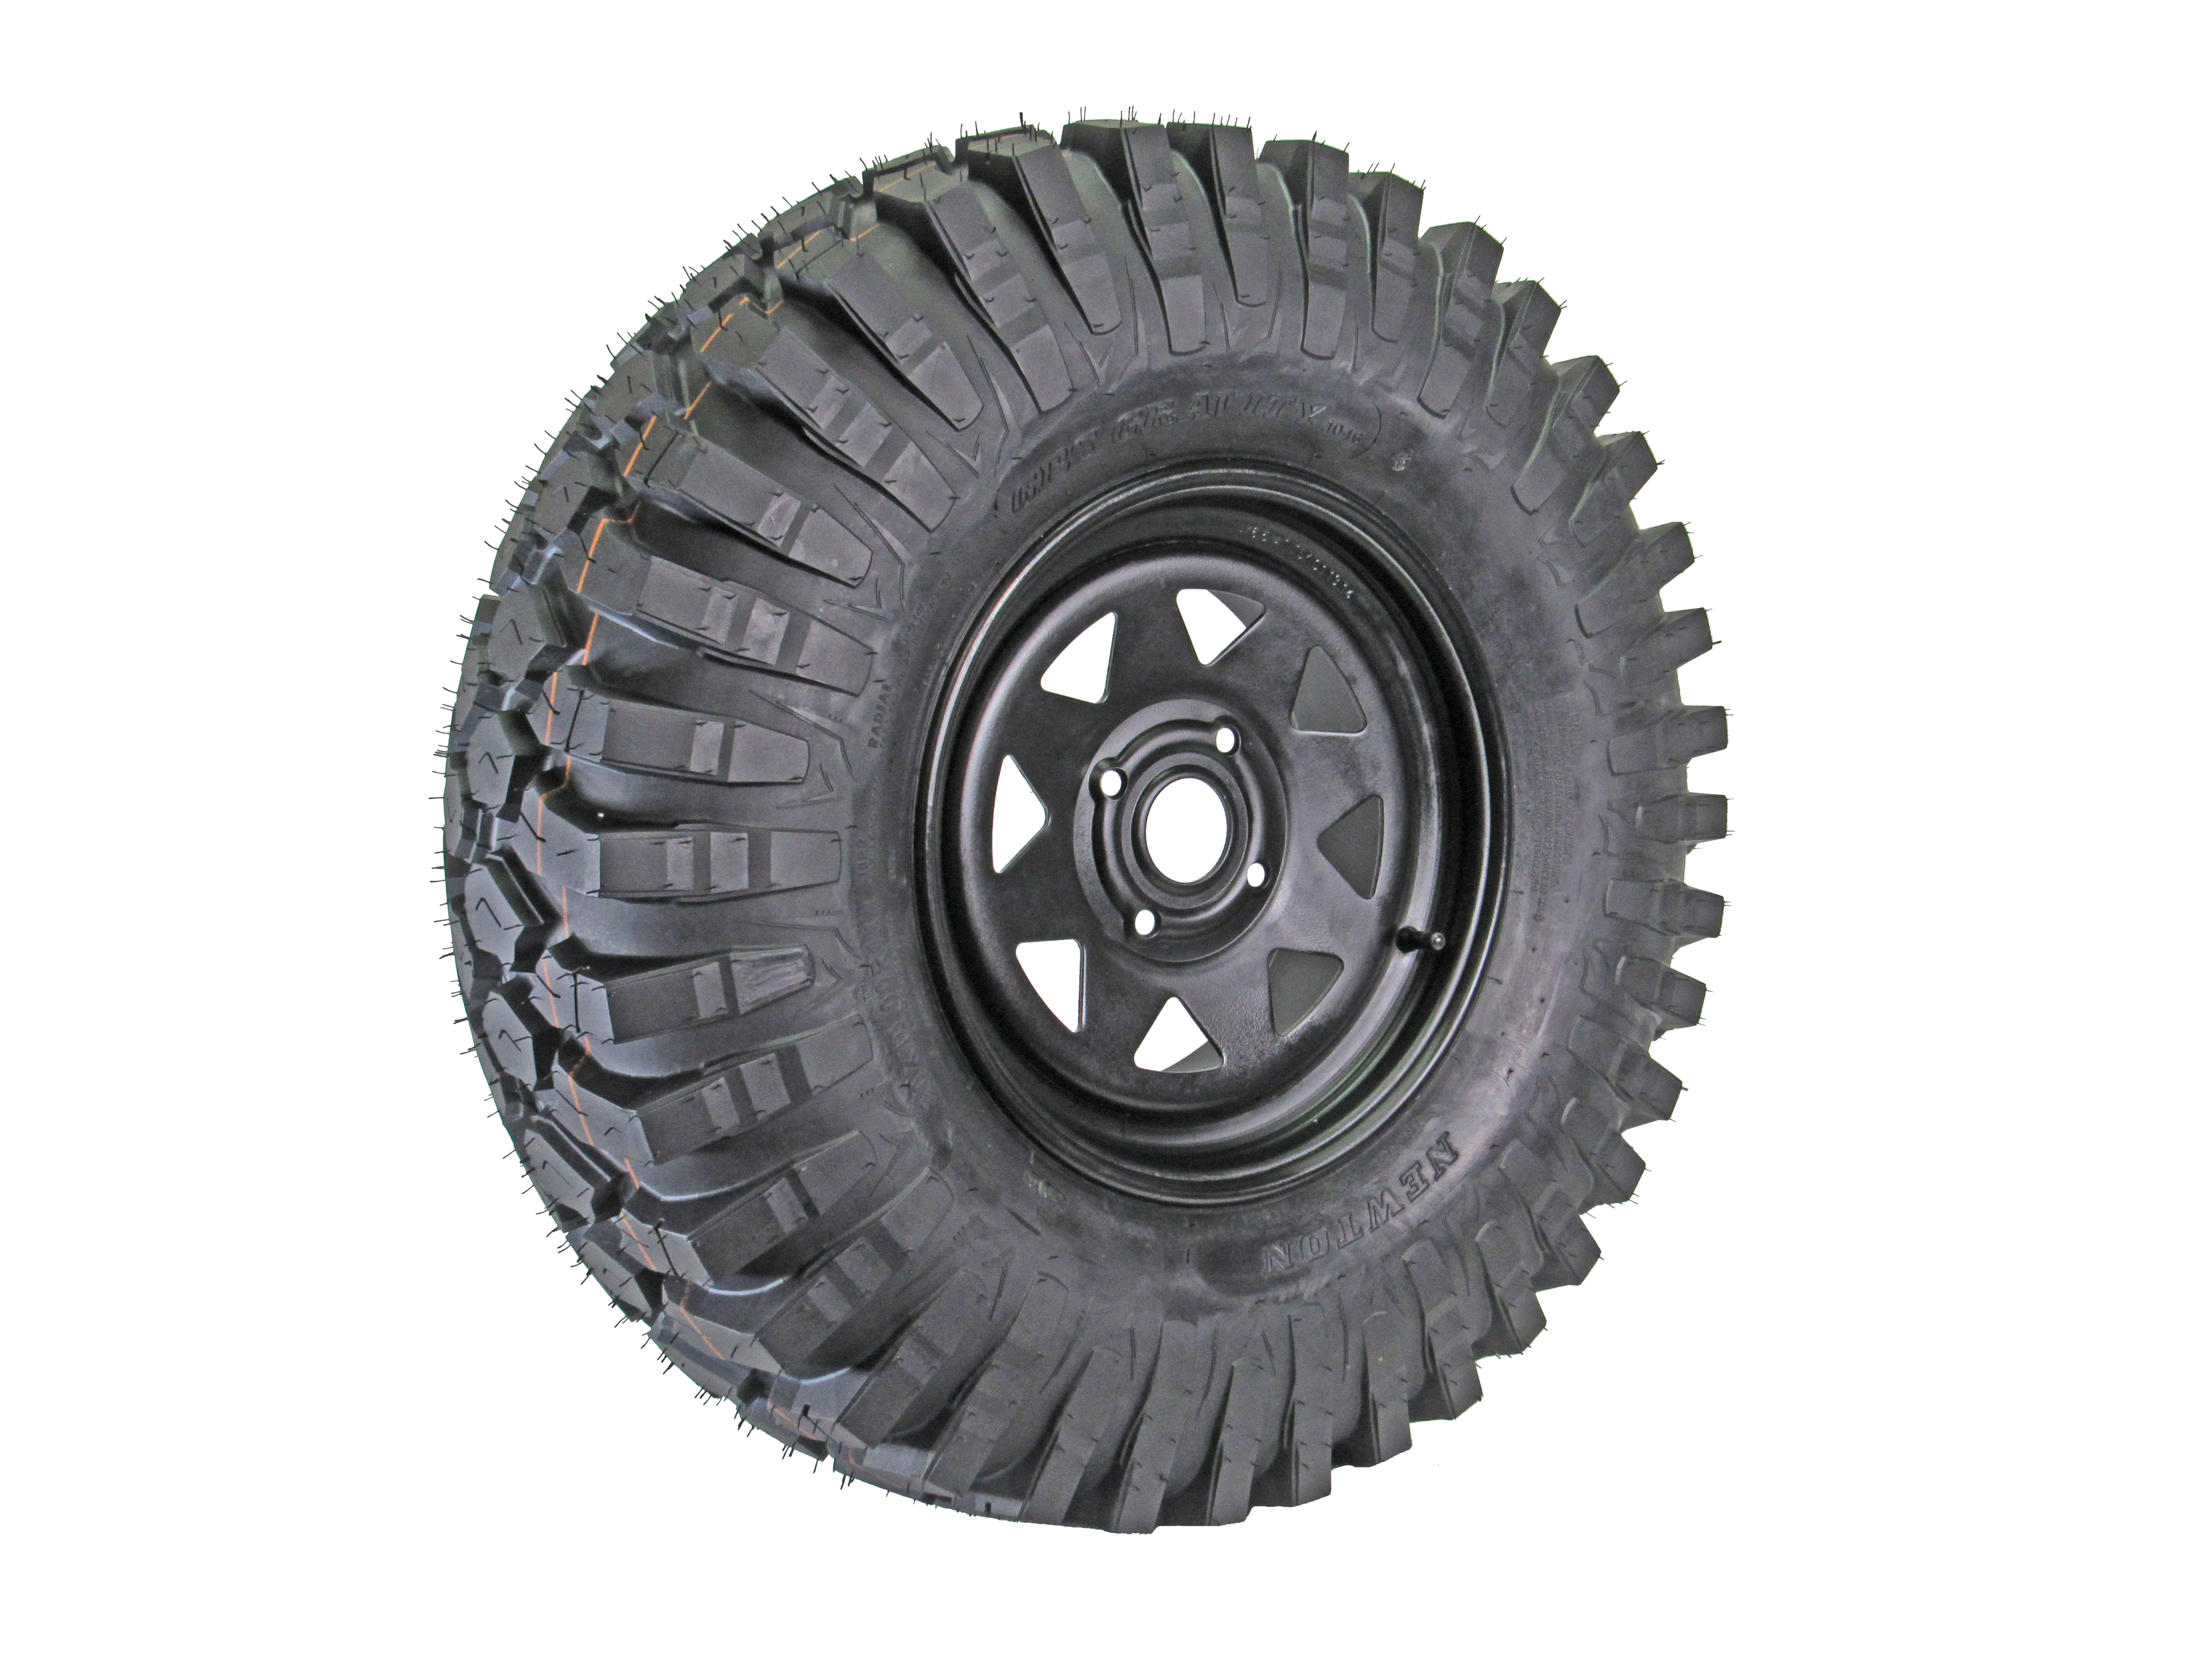 Limited Edition GPS Gravity 1046 UTV Tire 10 ply